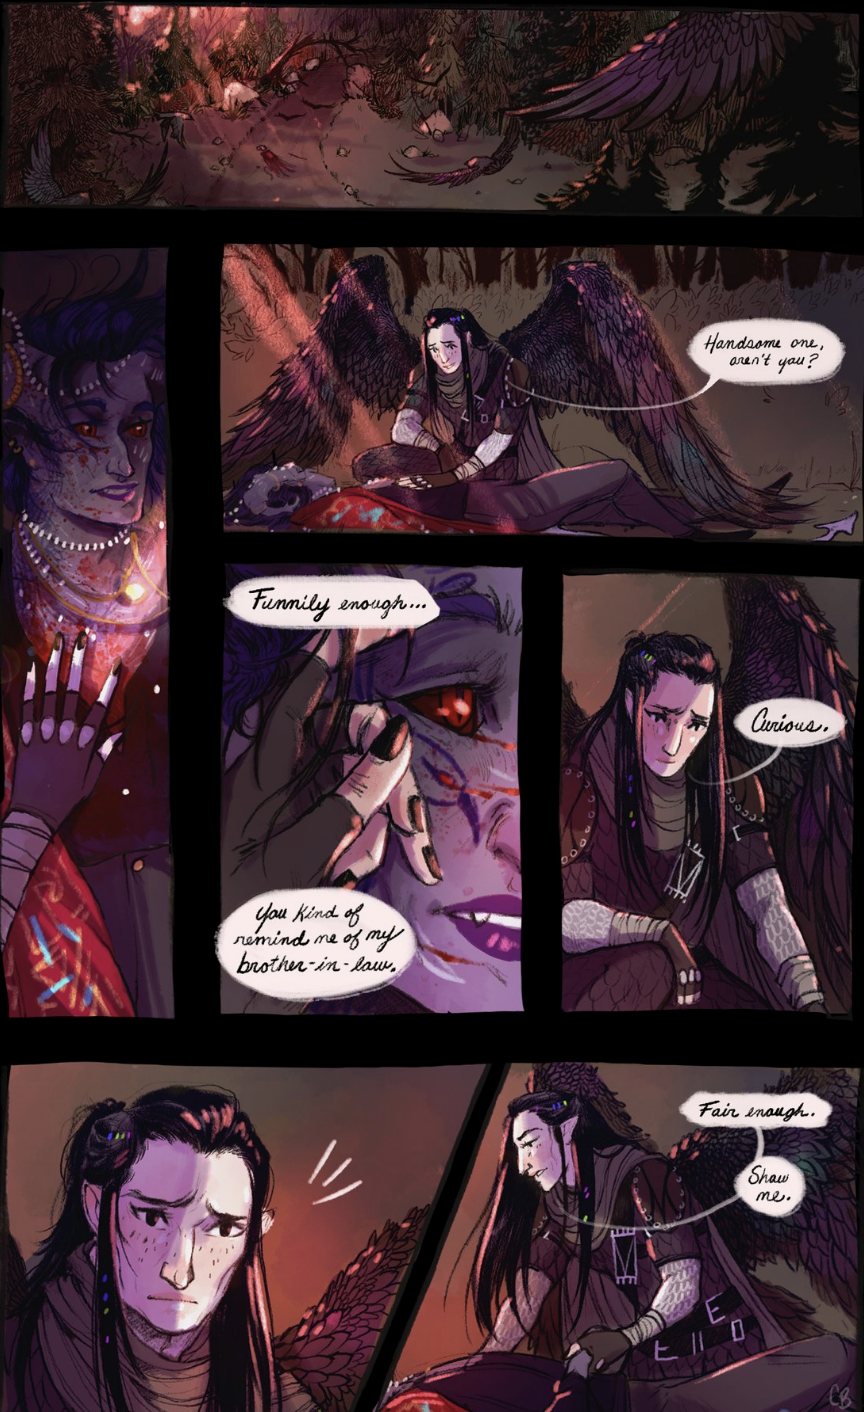 How They Want To Do This A Look At The Critical Role Fanart Phenomenon The Geekly Grind Critical role is an american web series in which a group of professional voice actors play dungeons & dragons. the geekly grind